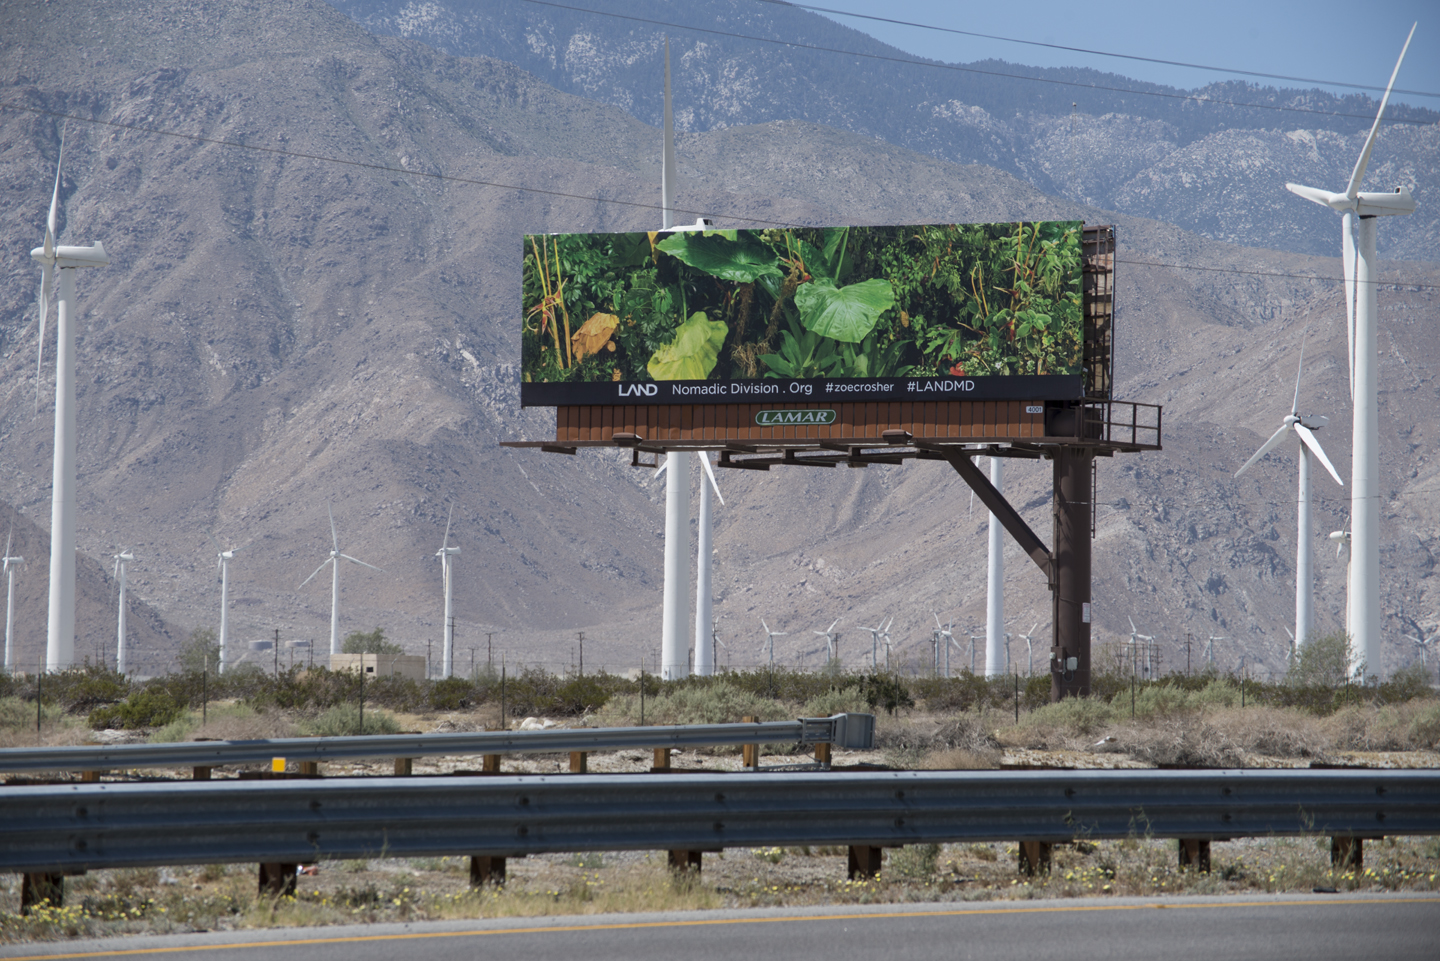 Zoe Crosher, The Manifest Destiny Billboard Project in Conjuction with LAND, Fourth Billboard to Be Seen Along Route 10, Heading West... (Where Highway 86 Intersects...), 2015. Courtesy: the artist. Photo: Chris Adler